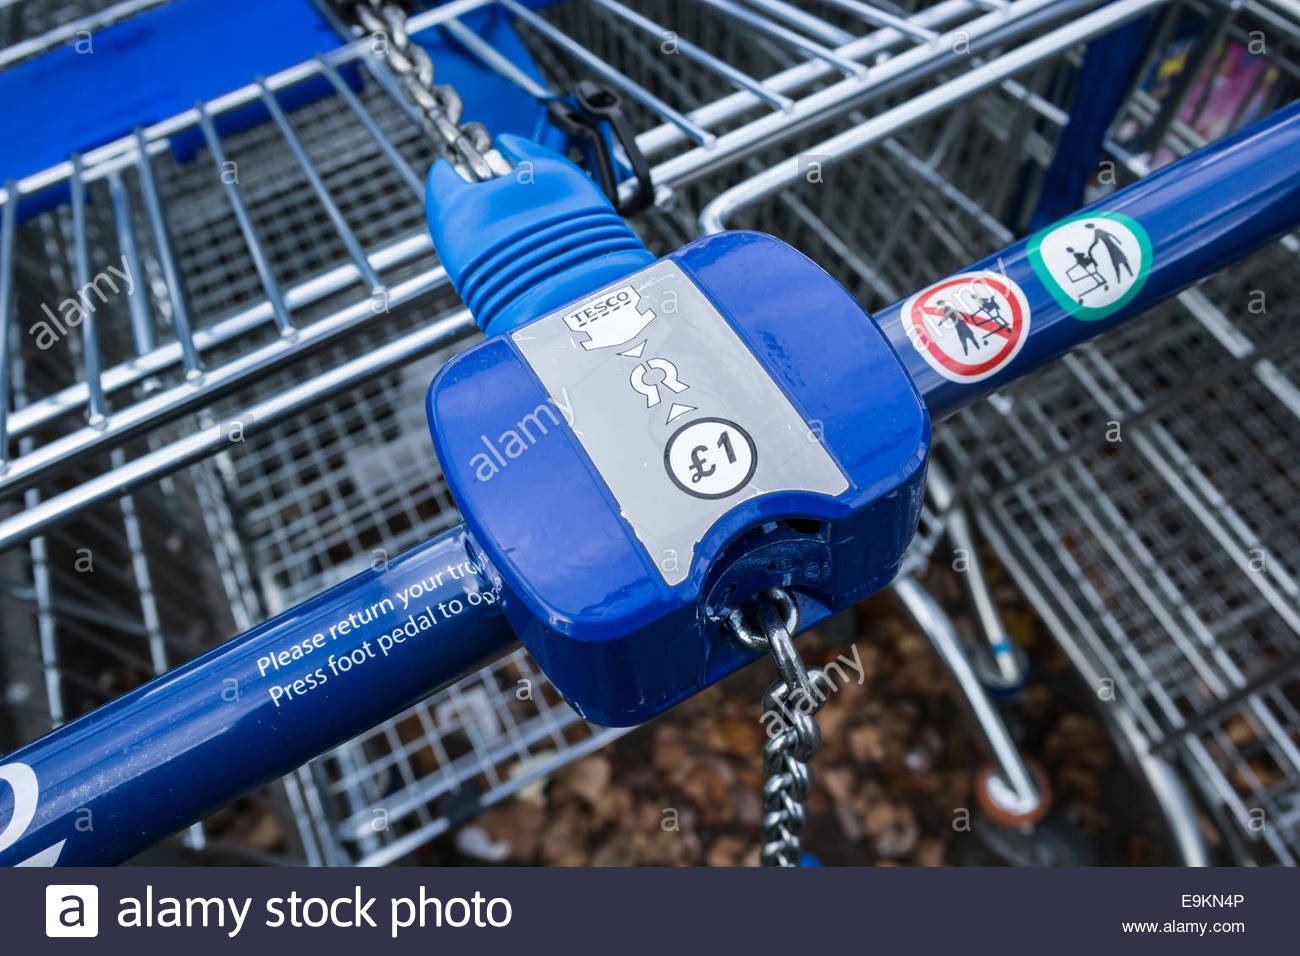 £1 coin lock on Tesco supermarket trolley - Stock Image